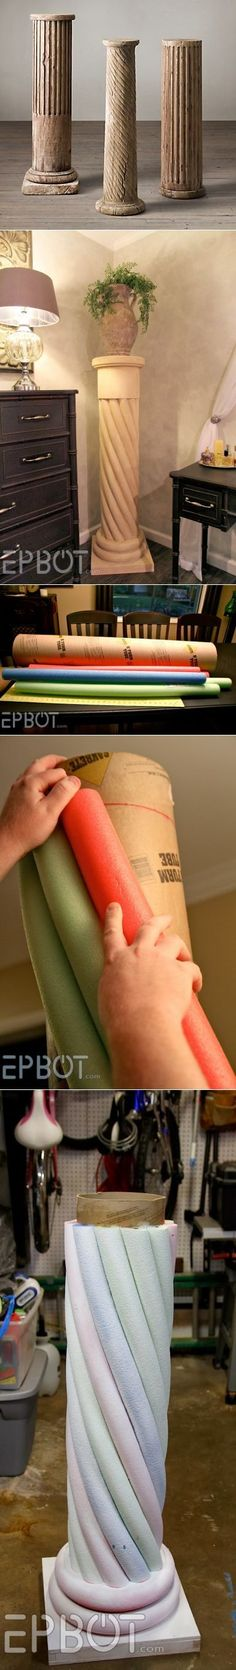 EPBOT: Make Your Own 'Stone' Decorative Column. With Pool Noodles! \/ Columns under flowers // Инна Жилина Cardboard Tubes, Cardboard Crafts, Paper Crafts, Fun Crafts, Diy And Crafts, Cardboard Furniture, Diy Projects To Try, Diy Gifts, Diy Home Decor